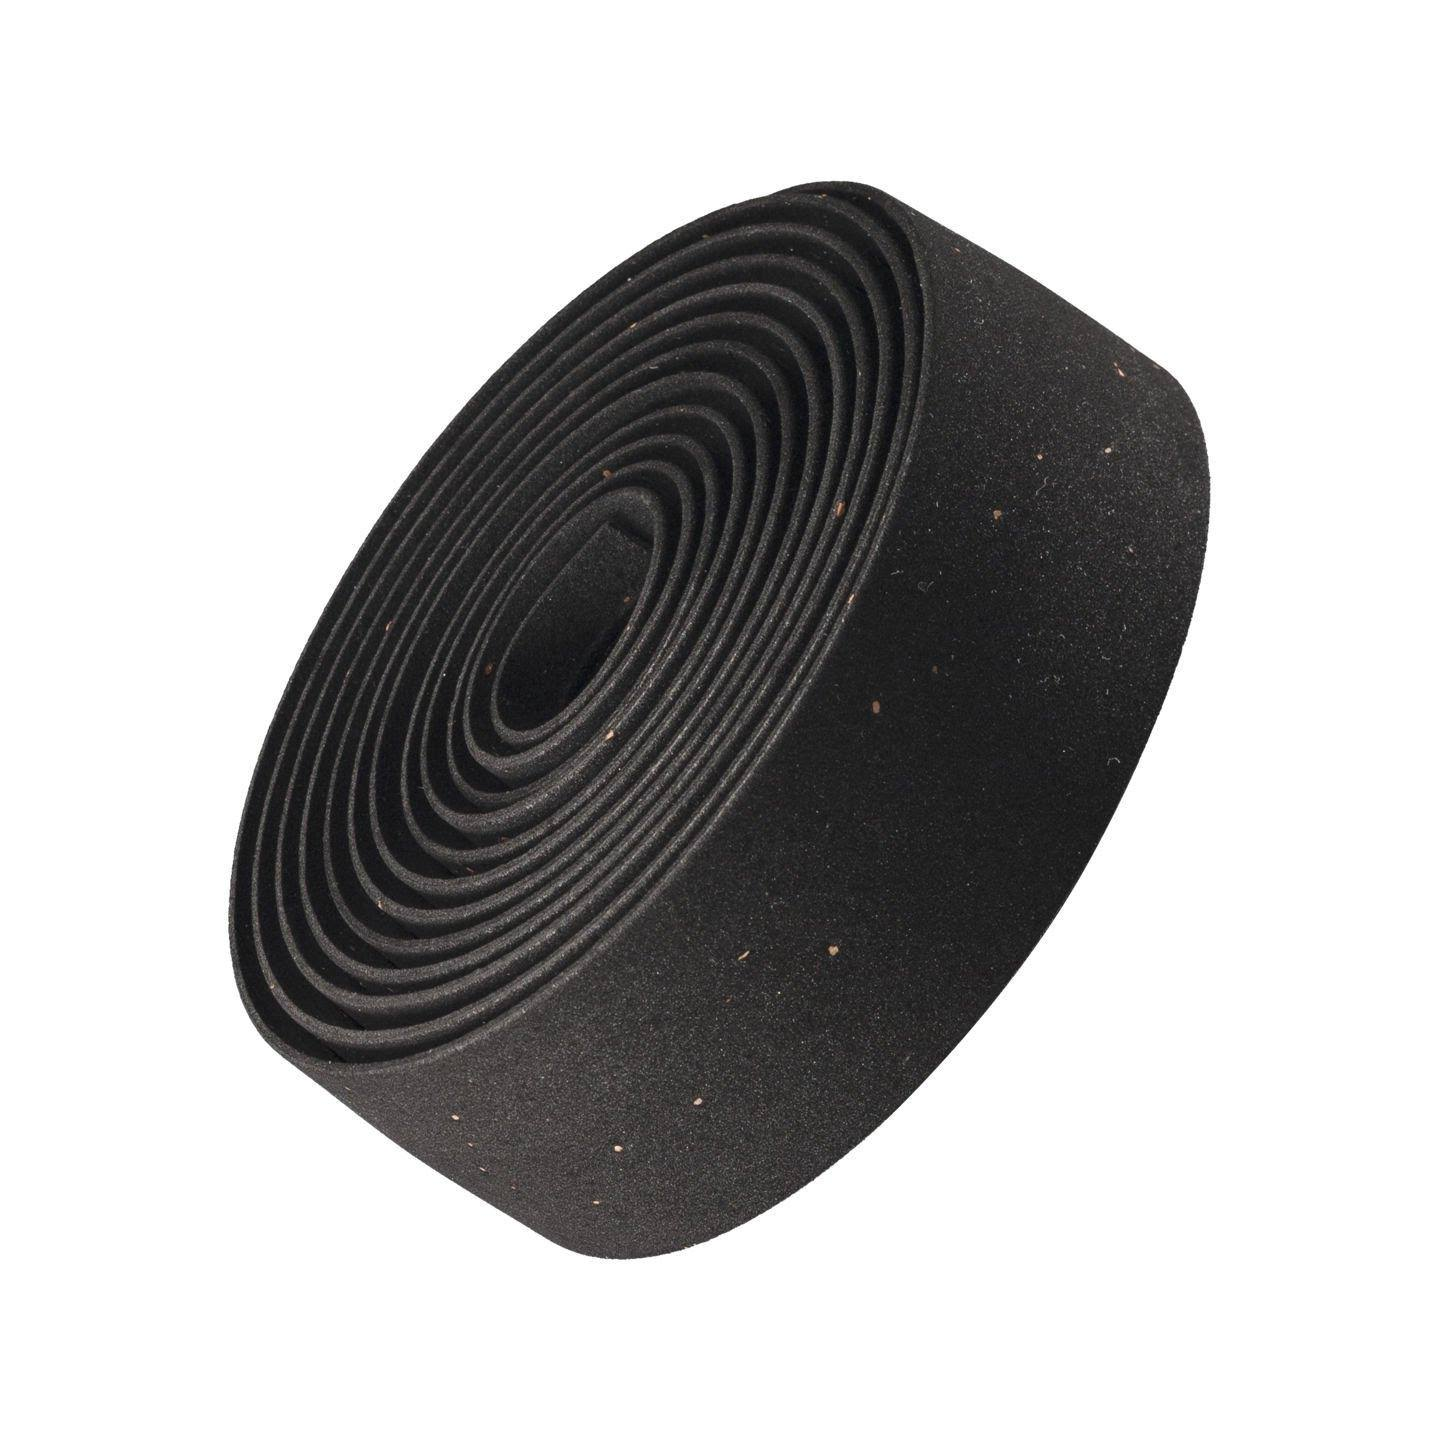 Bontrager Gel Cork Black Handlebar Tape 2019